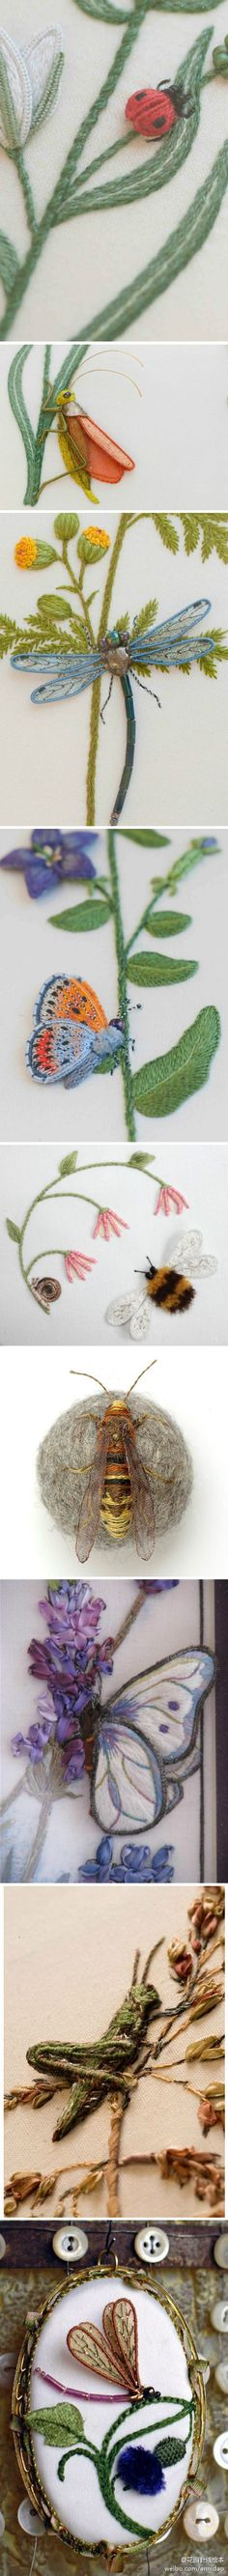 I ❤ stumpwork embroidery . . . Three-dimensional embroidery insects